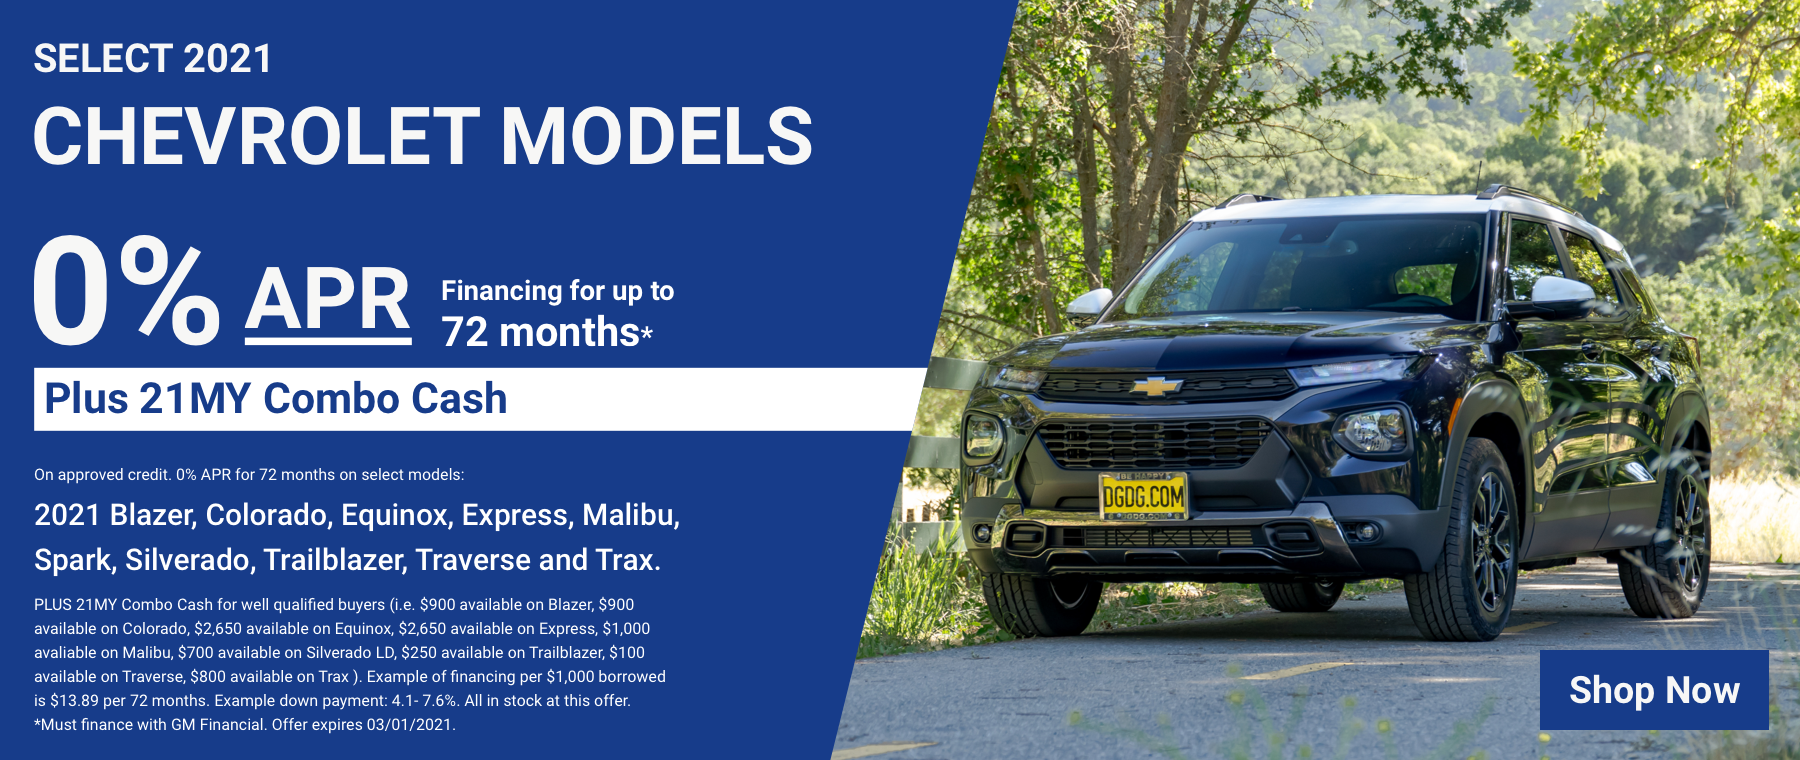 APR – Select 2021 Chevy Models – 0 for 72